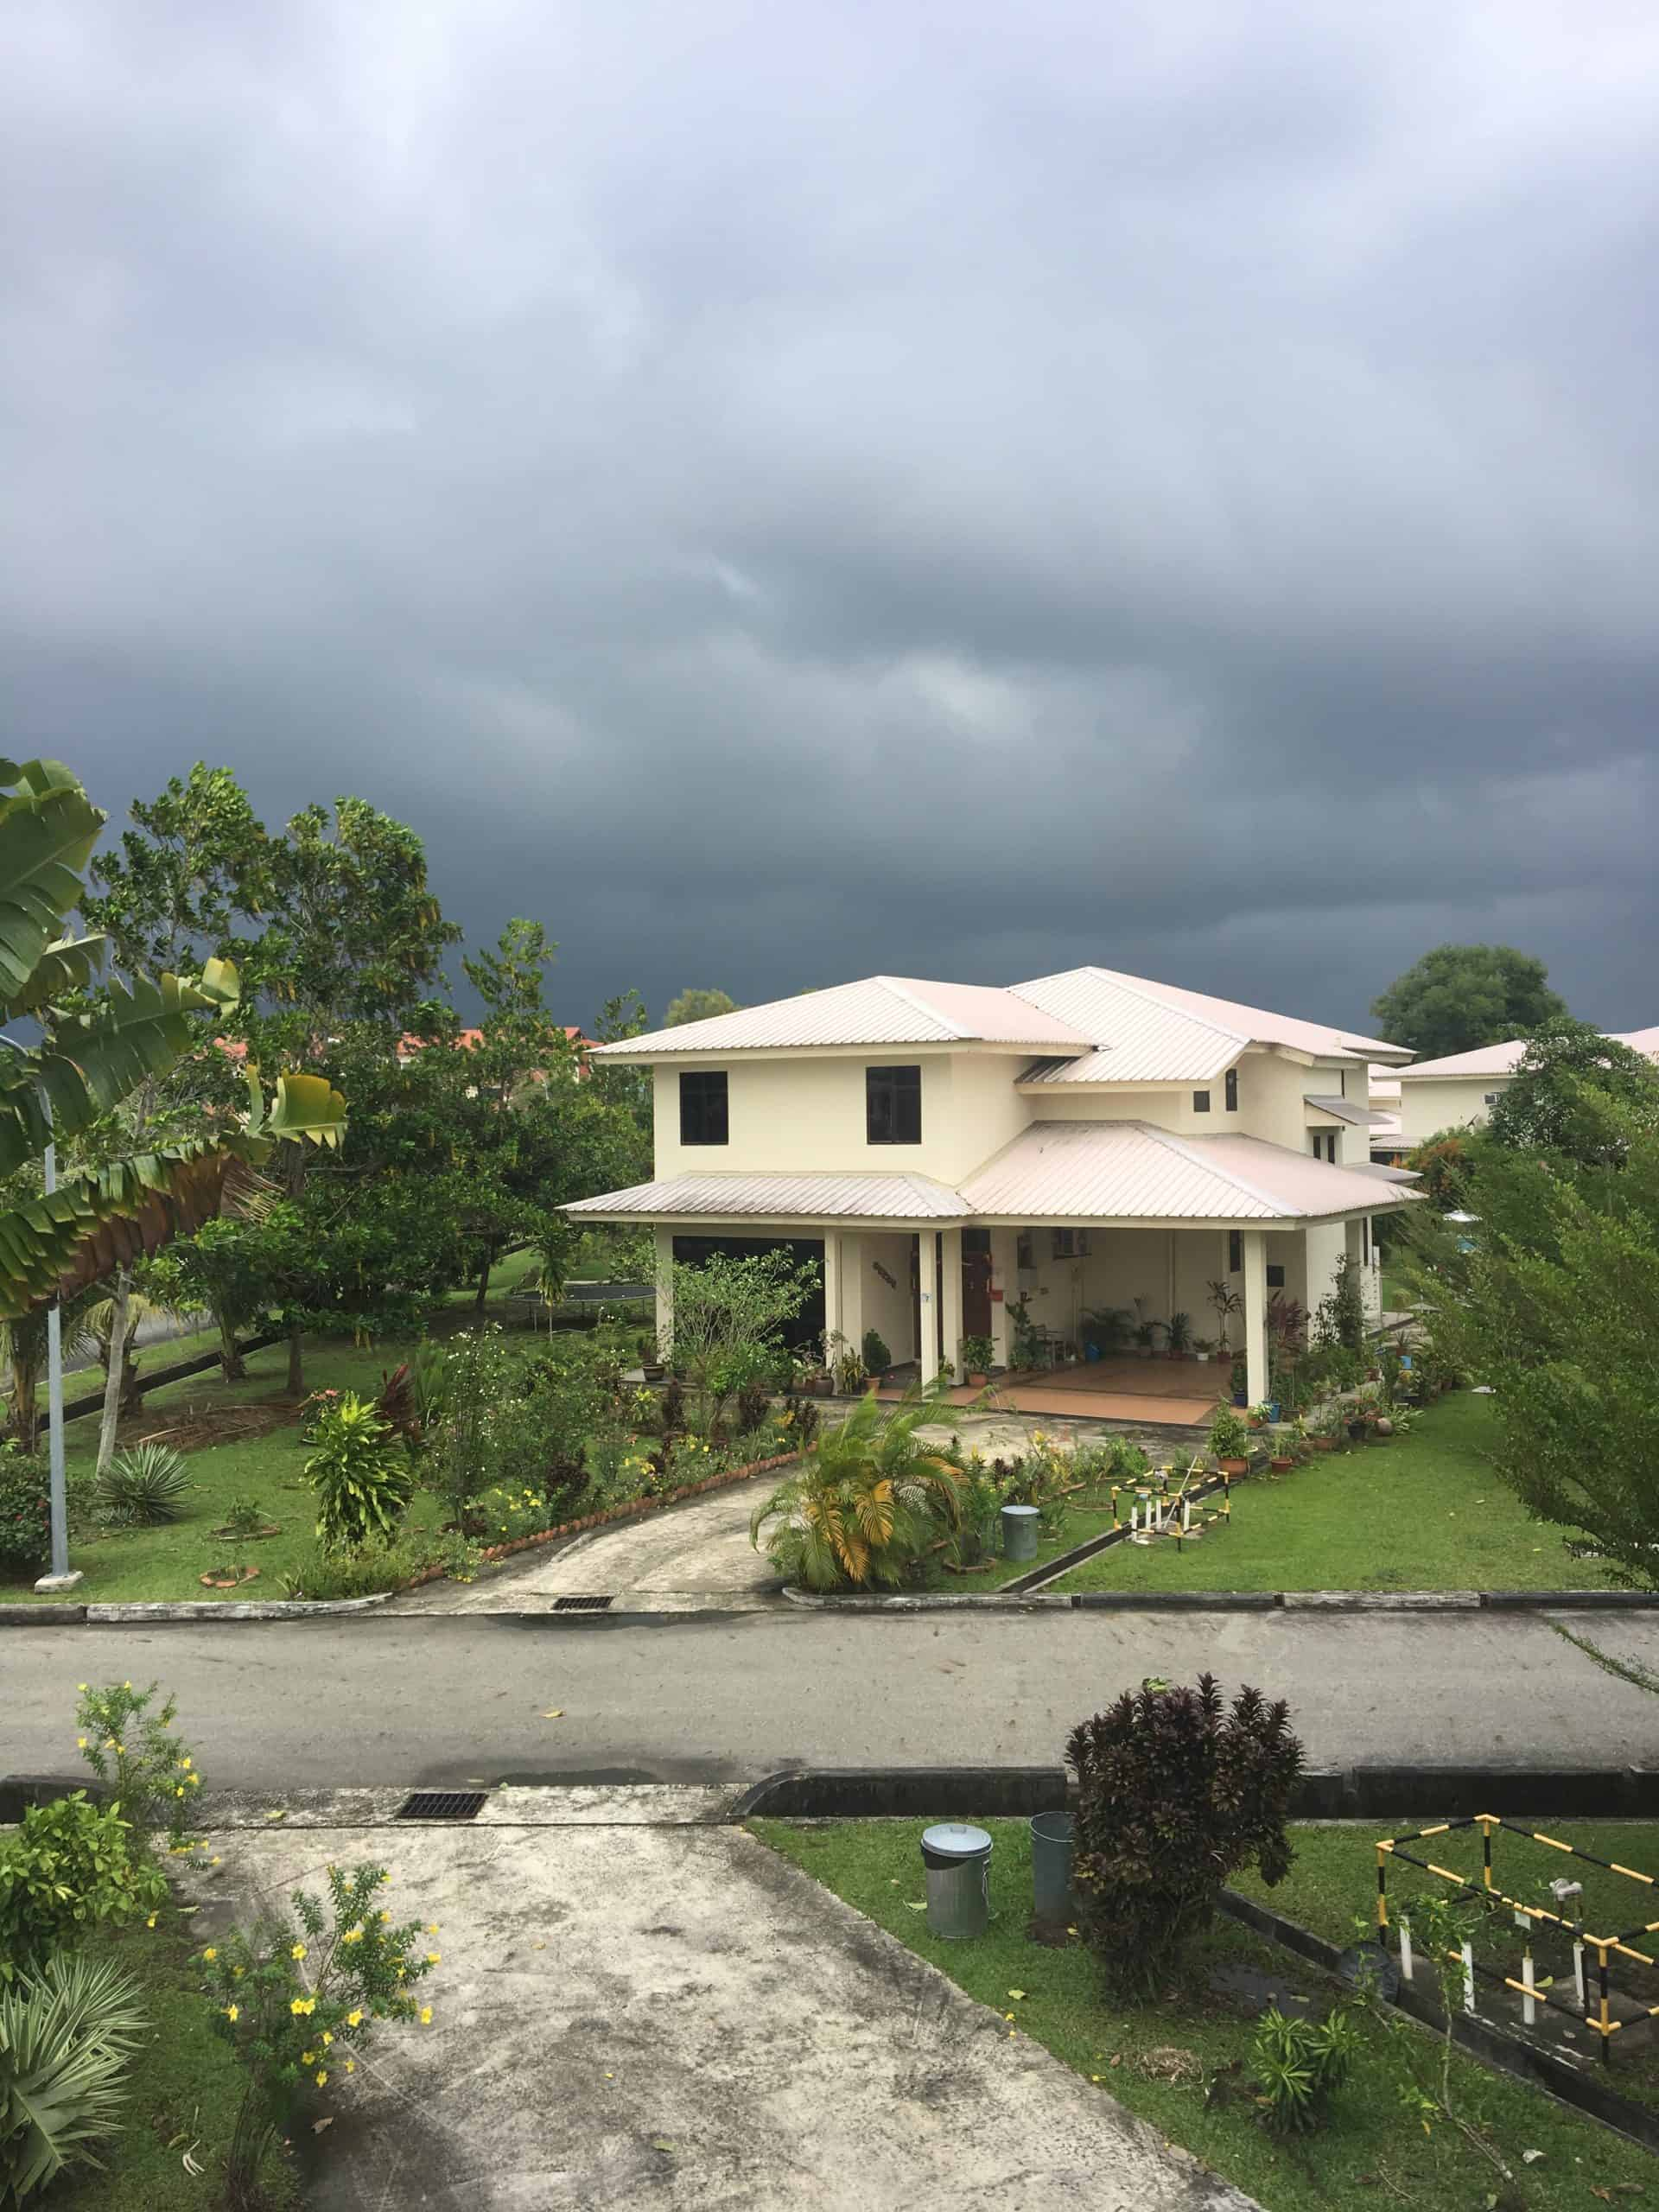 view of a house against a stormy sky